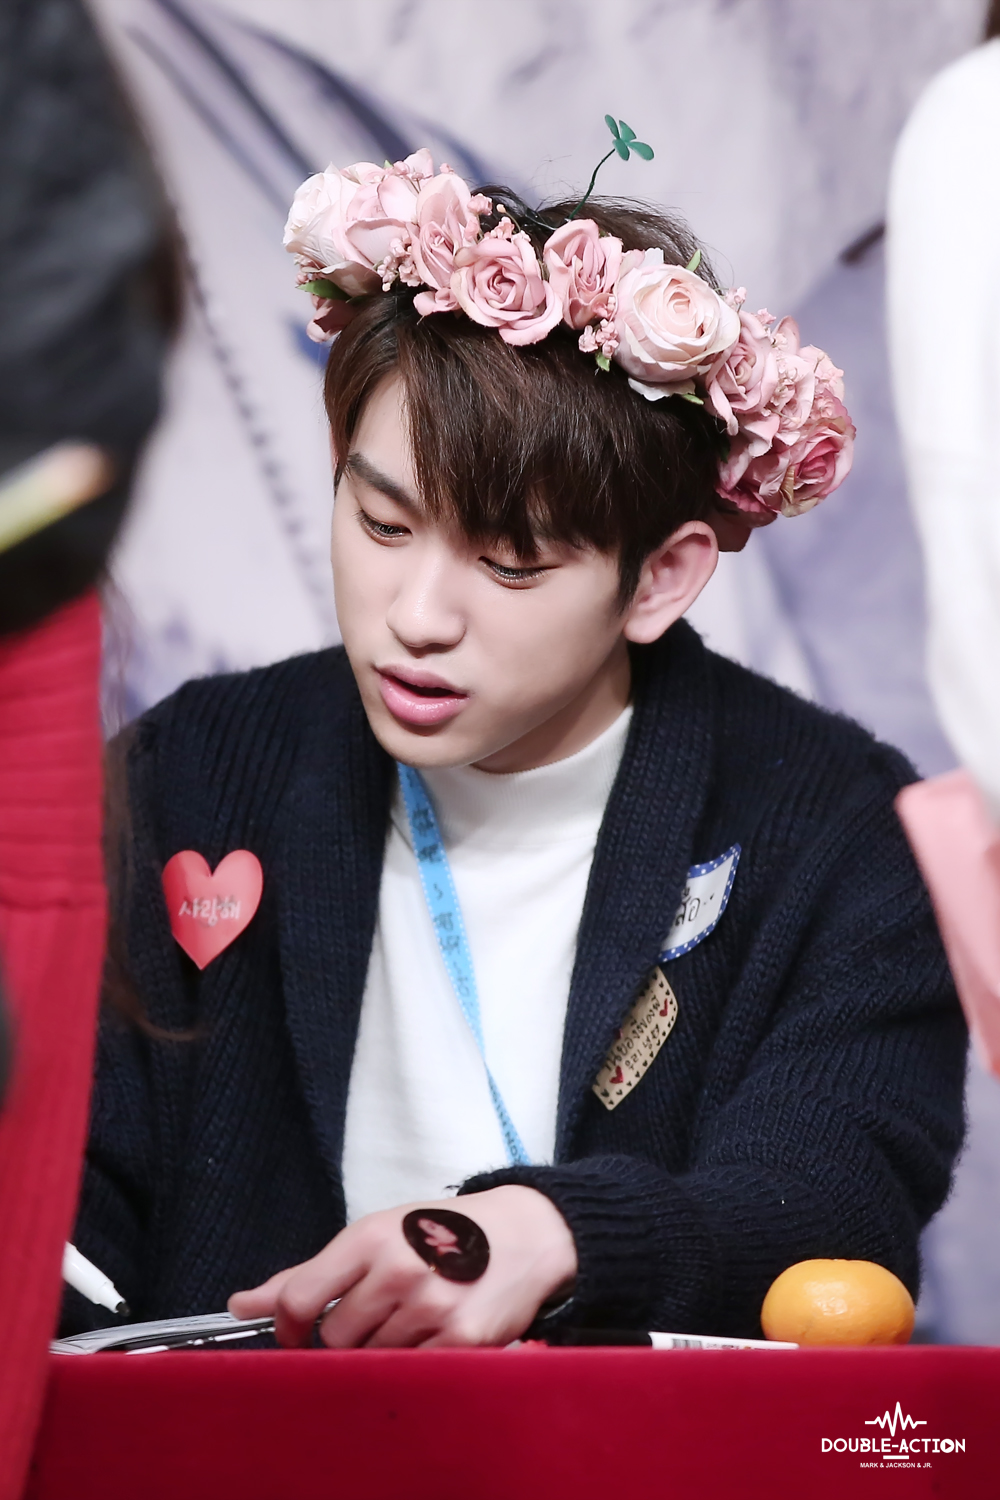 151105 fansign | Tumblr